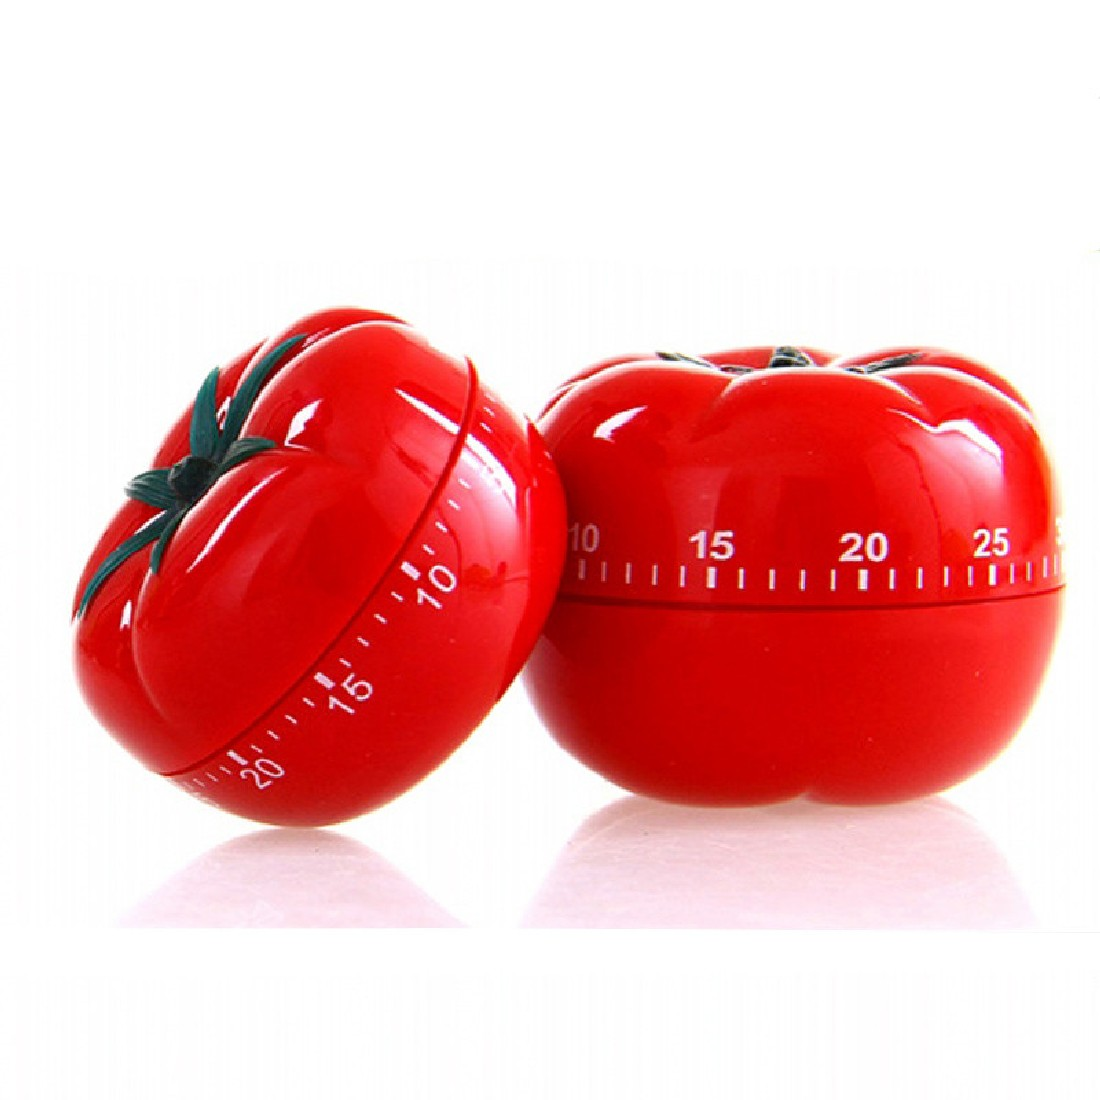 New Practical Mechanical Timer 1-60min 360 Degree Fashion Cute Indoor Kitchen Tomato Mechanical Countdown Timer(China (Mainland))